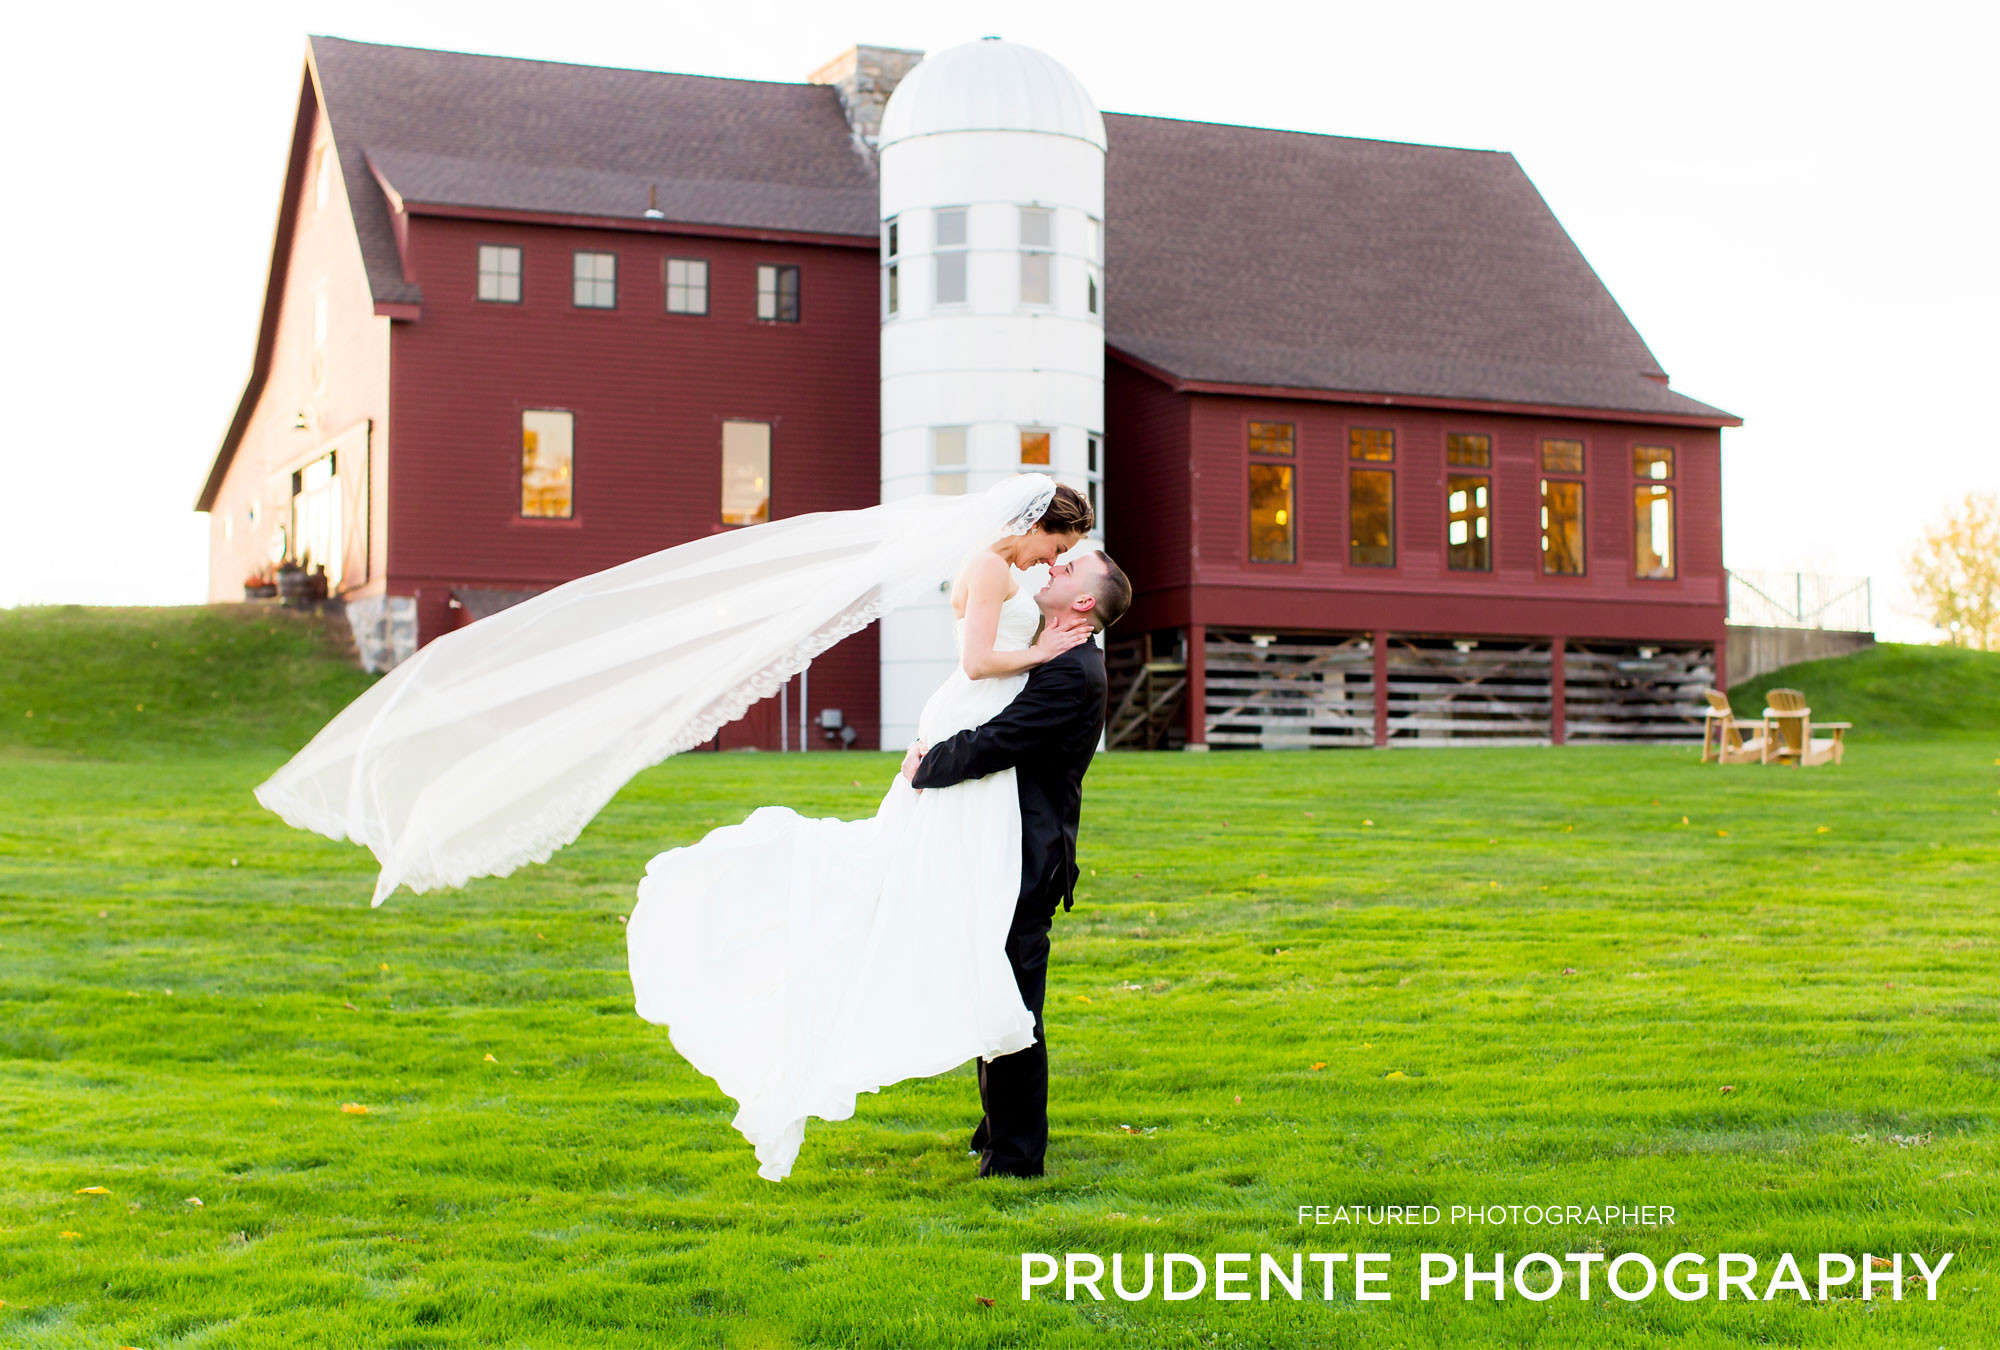 Featured Photographer - Prudente Photography